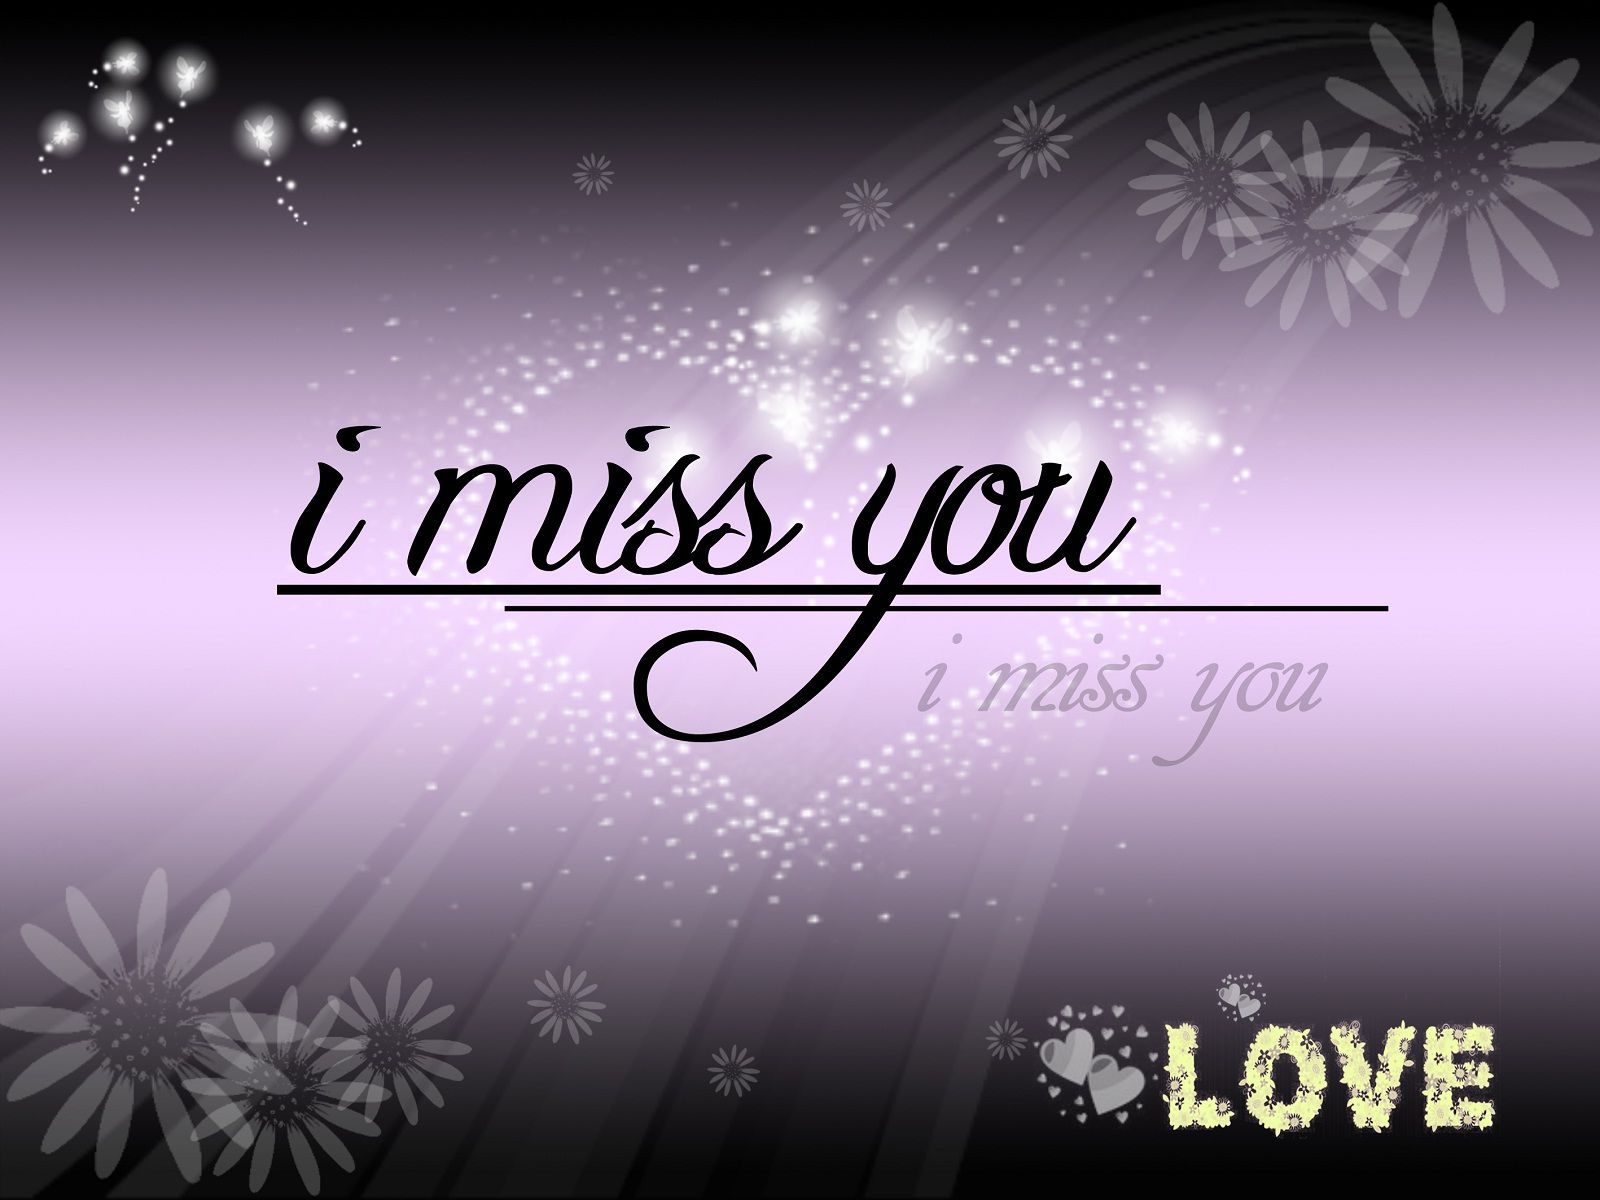 Wallpaper download miss u - I Miss You Wallpaper Collection For Free Download